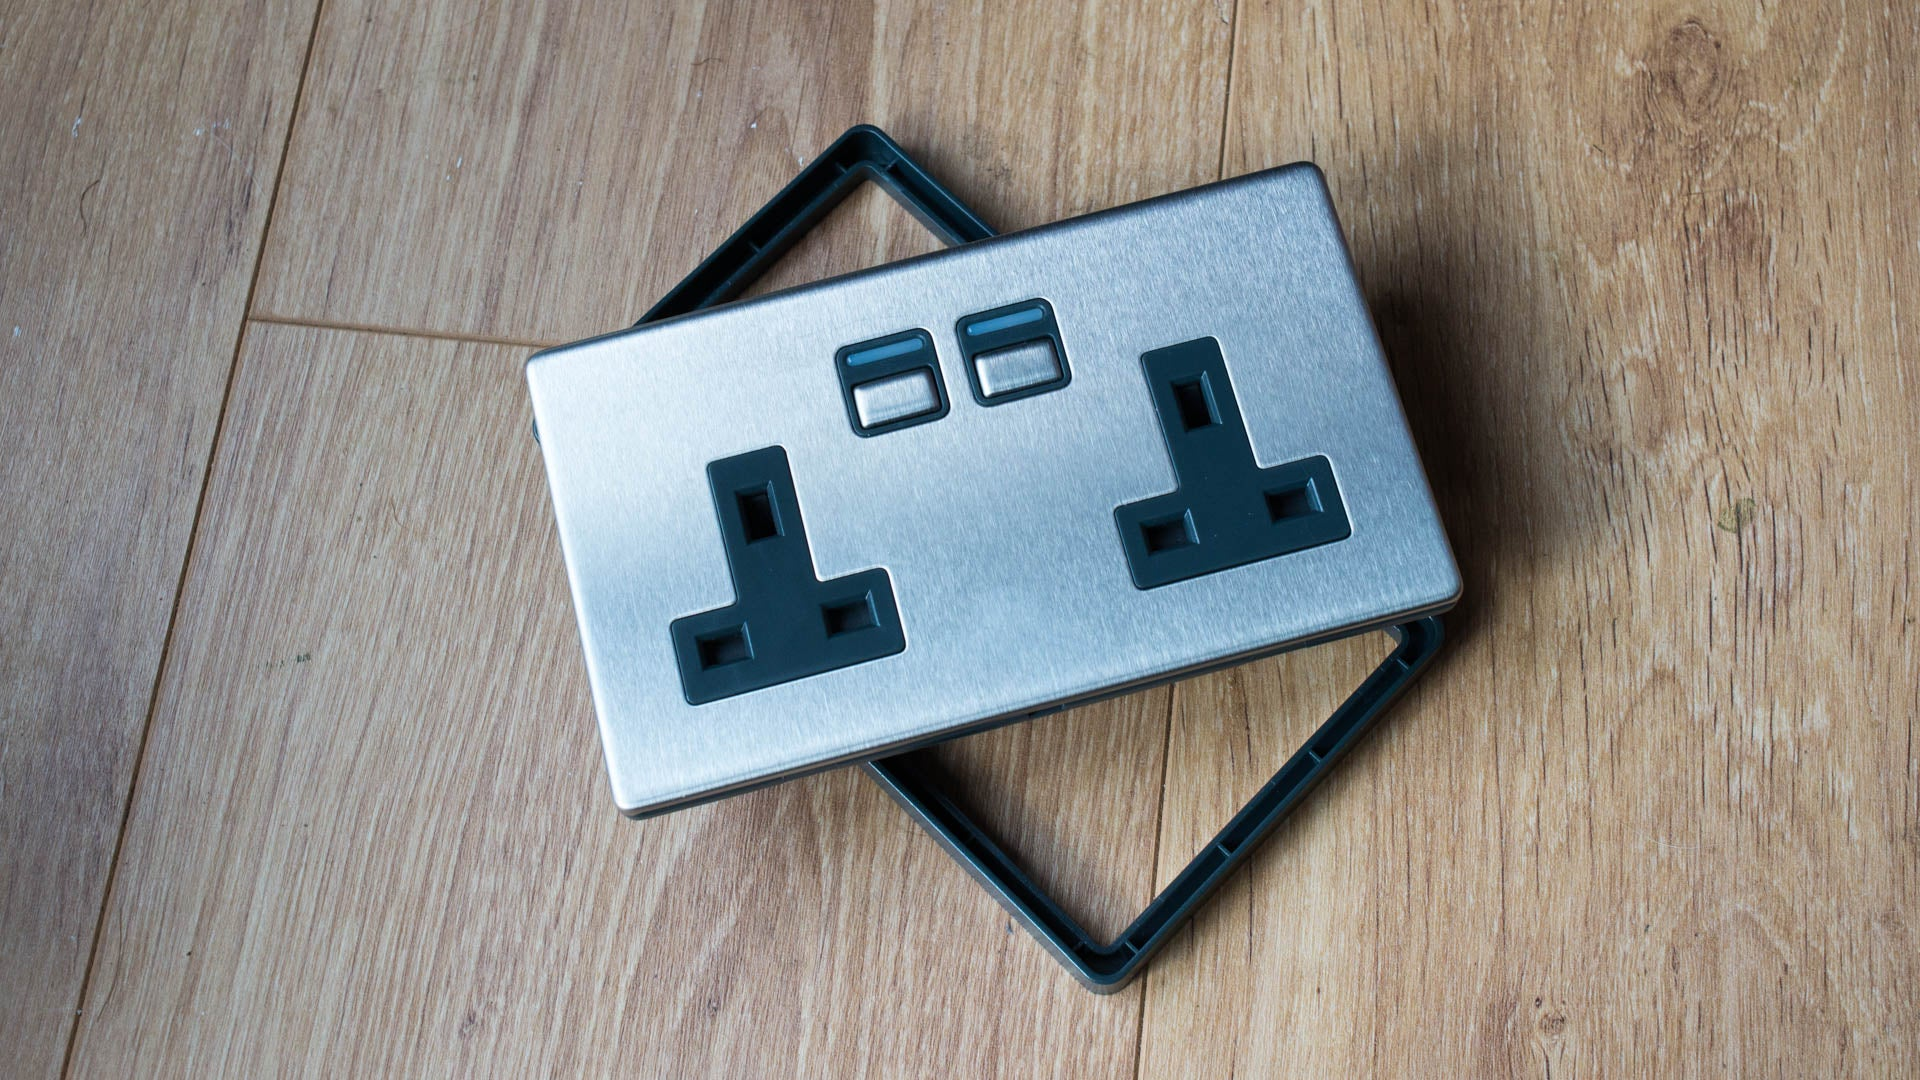 Best Smart Plugs 2019: The best sockets to make your home